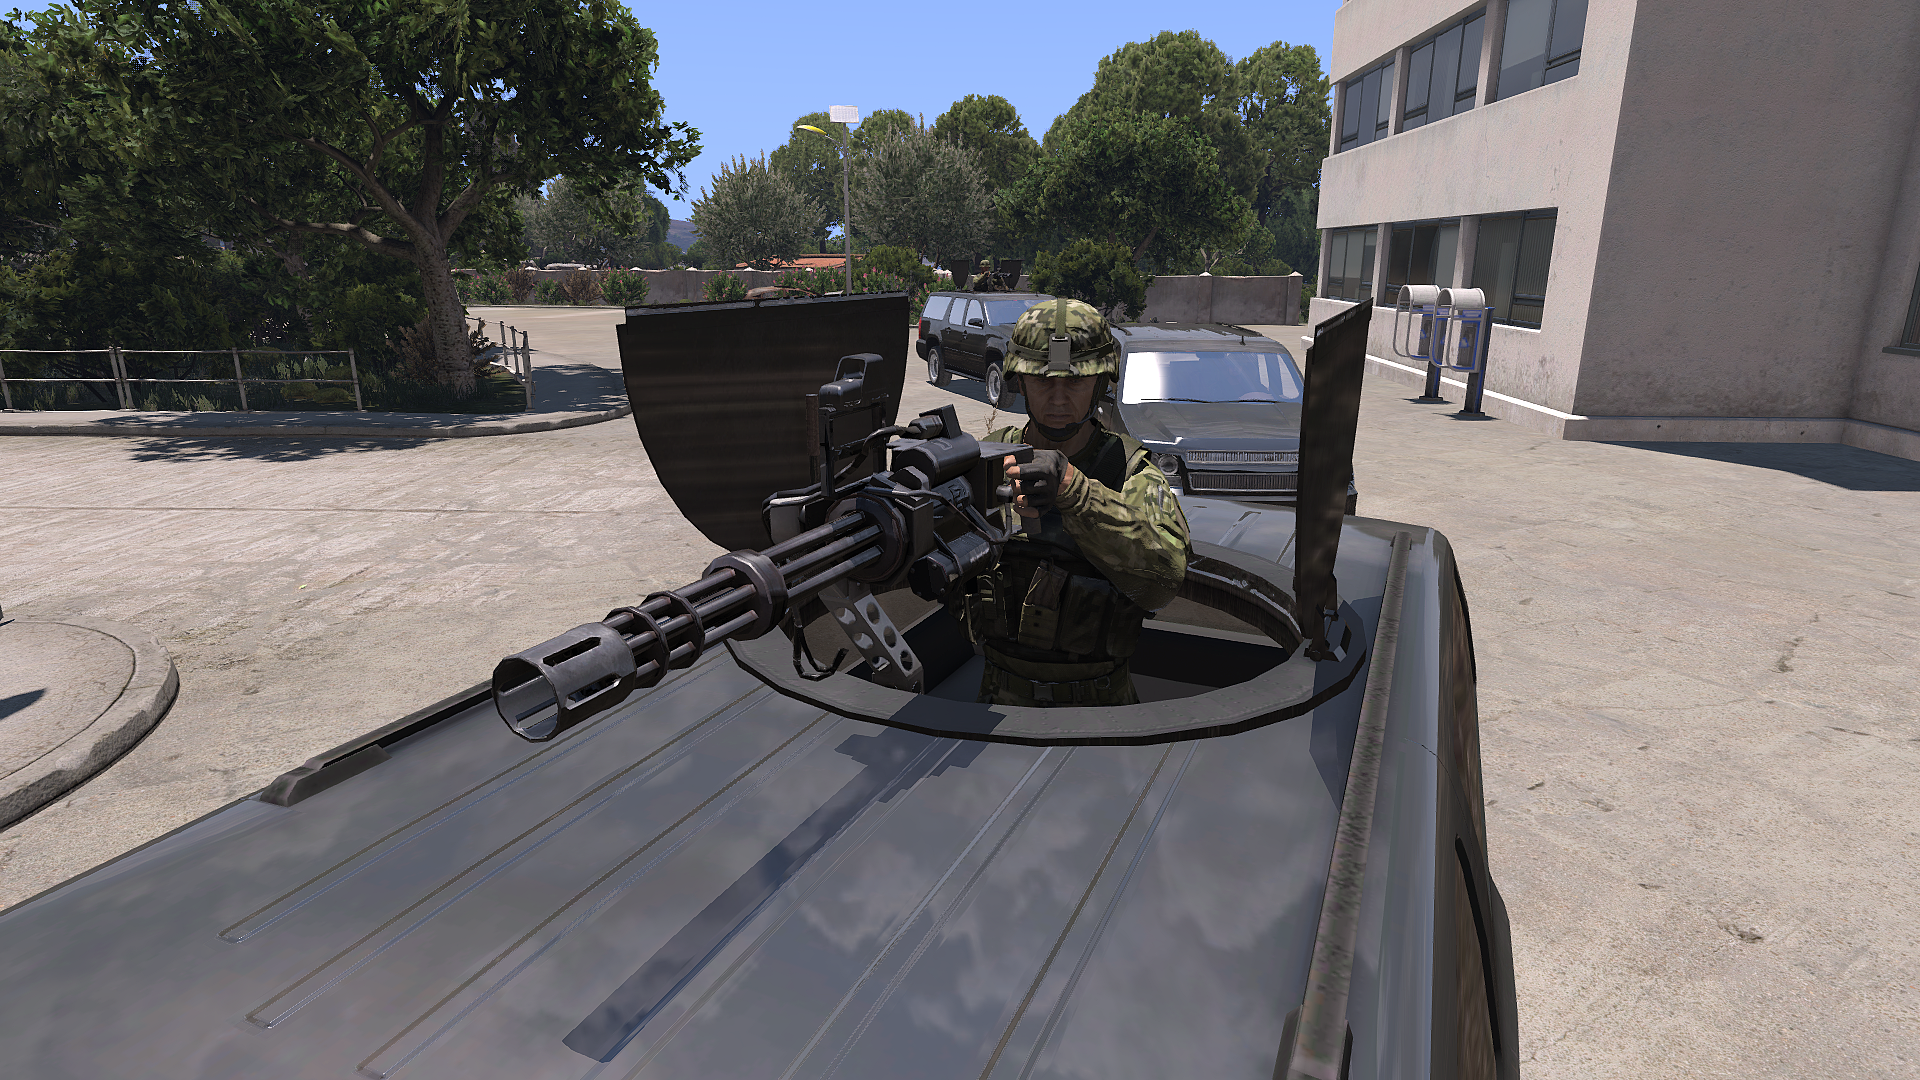 arma3_2015-12-09_07-33-20-63.png